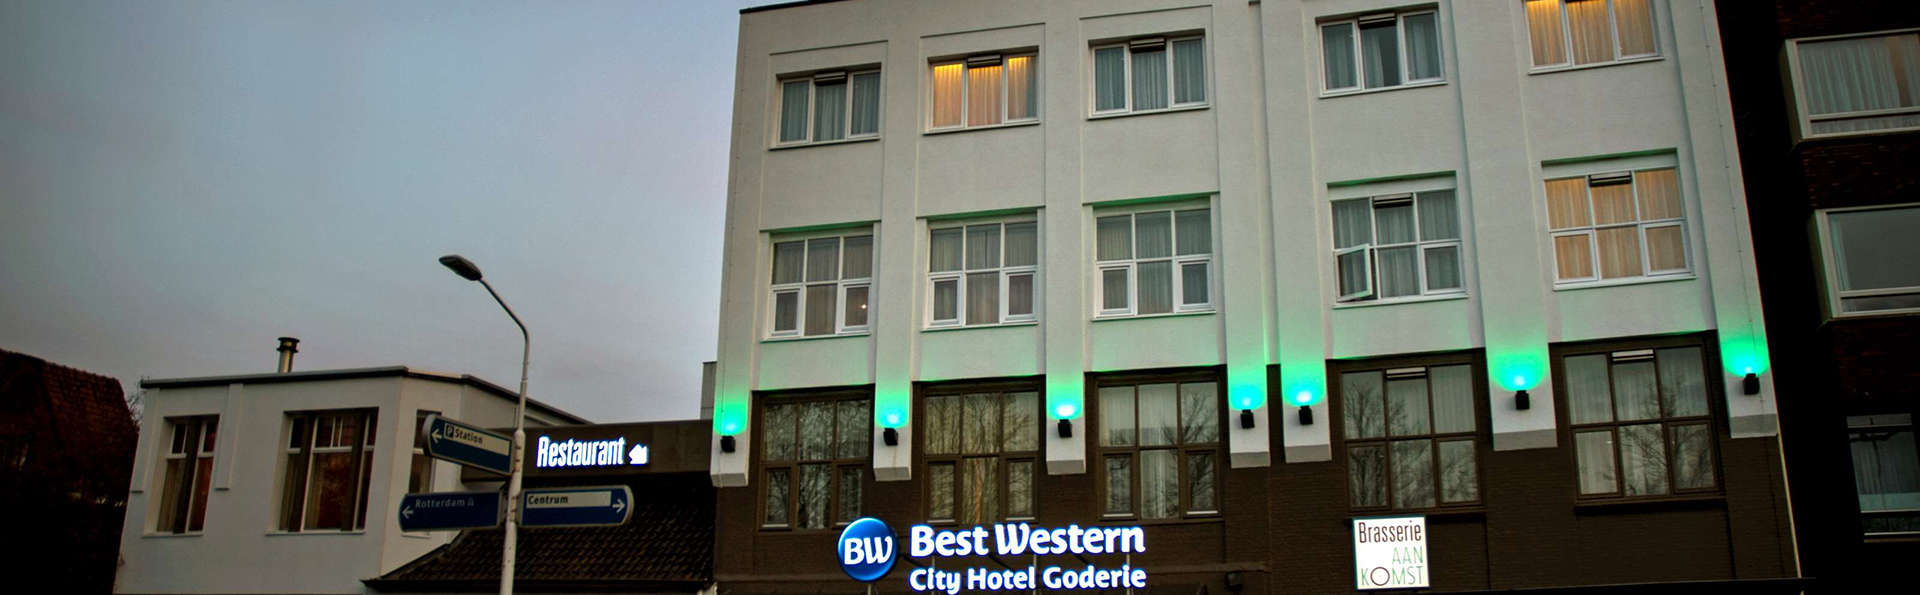 Best Western City Hotel Goderie - EDIT_FRONT_NIGHT.jpg